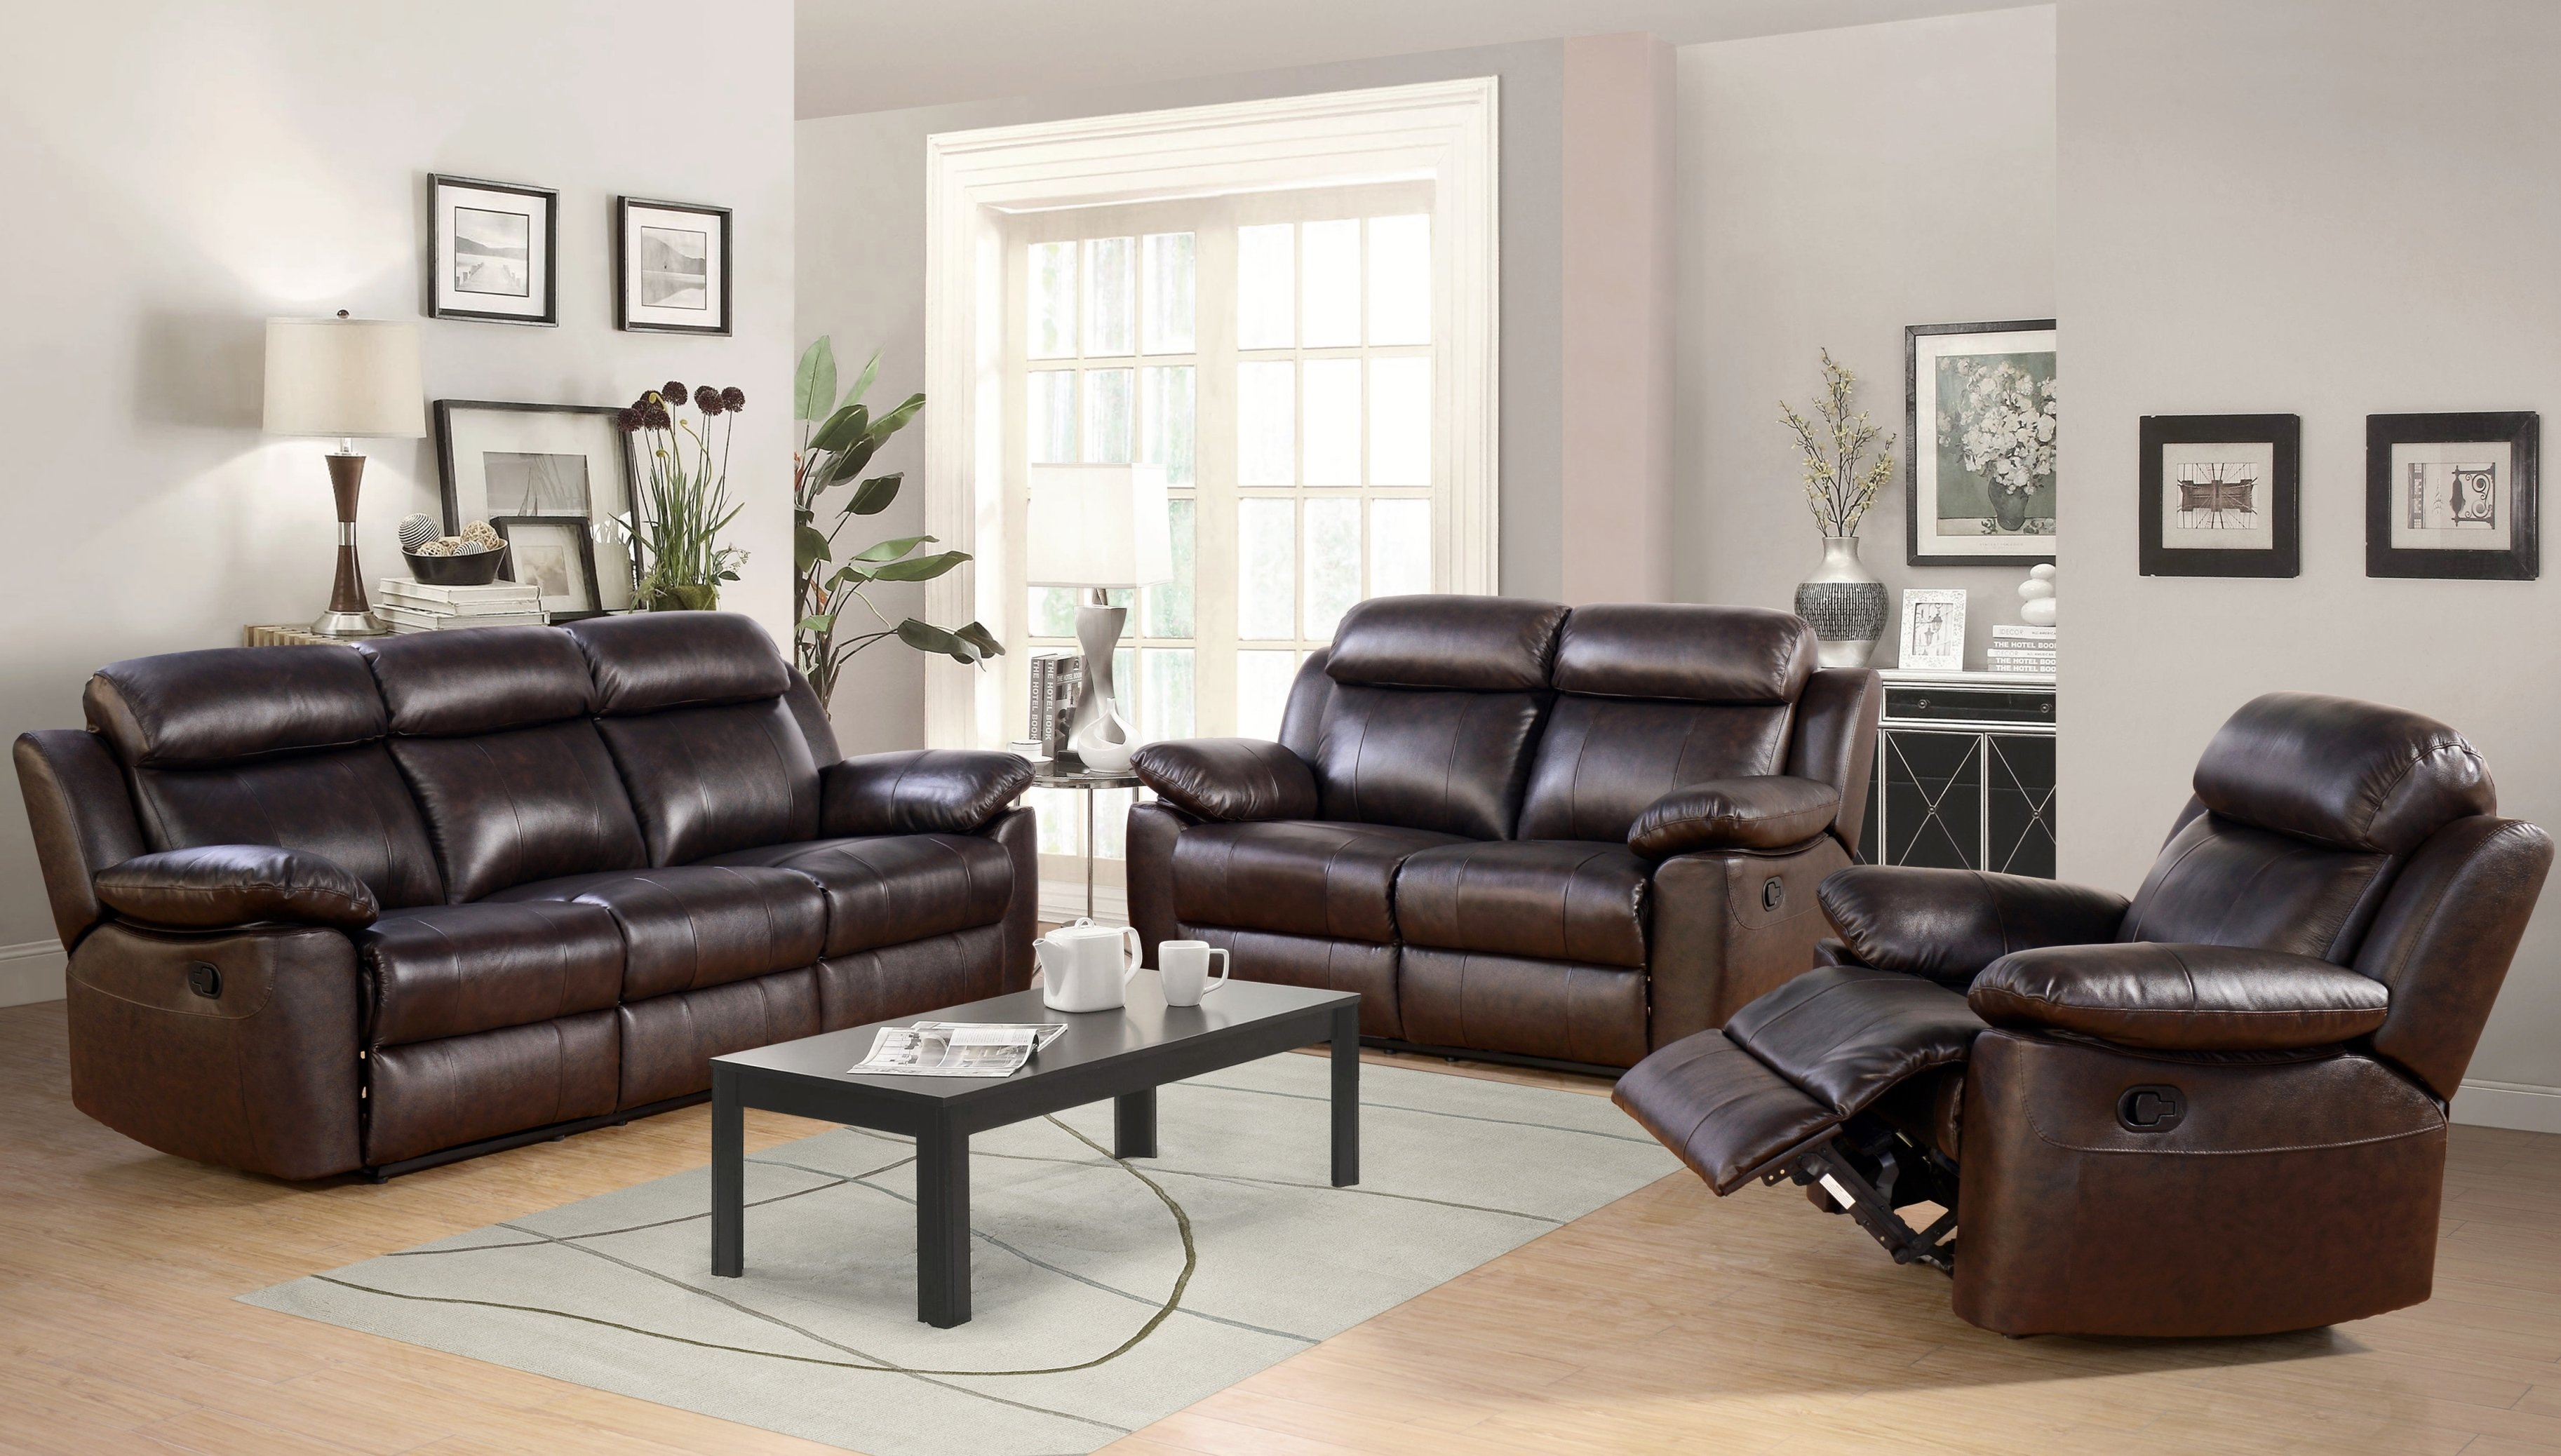 Breakwater Bay Oliver Reclining Leather 3 Piece Living Room Set inside Leather Living Room Sets